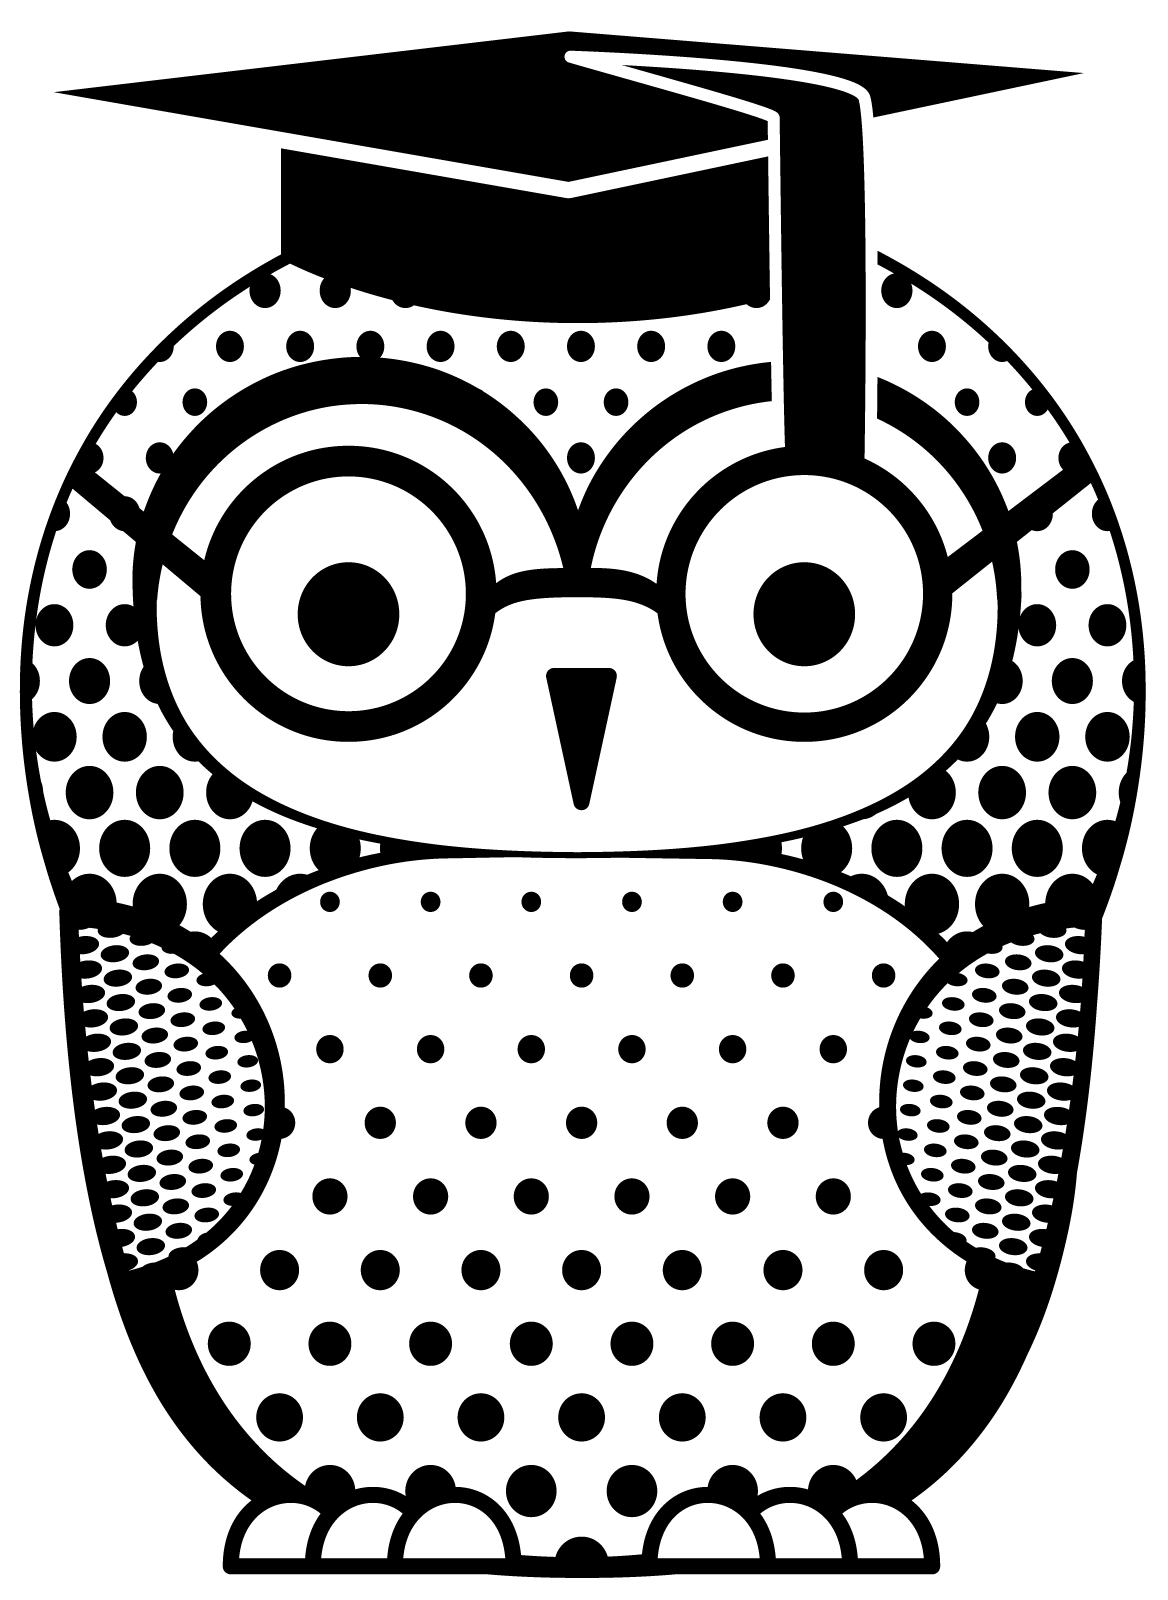 new professor owl logo